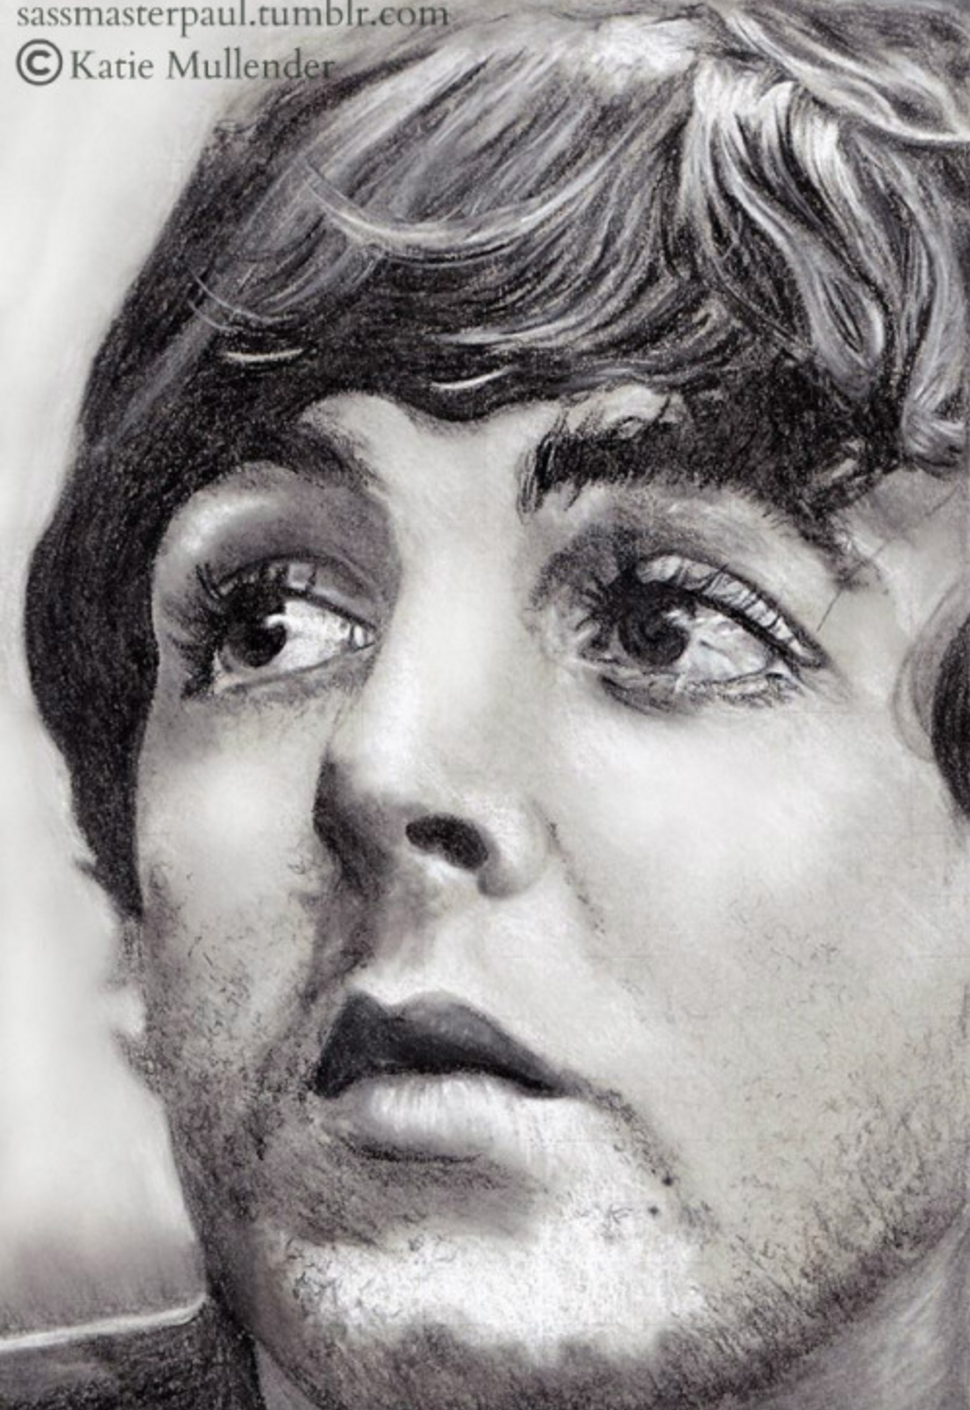 PaulMcCartney Fan Art We Are Totally Blown Away By This Ultra Detailed Charcoal Sketch Talented Katie Mullender Sassmasterpaultumblr